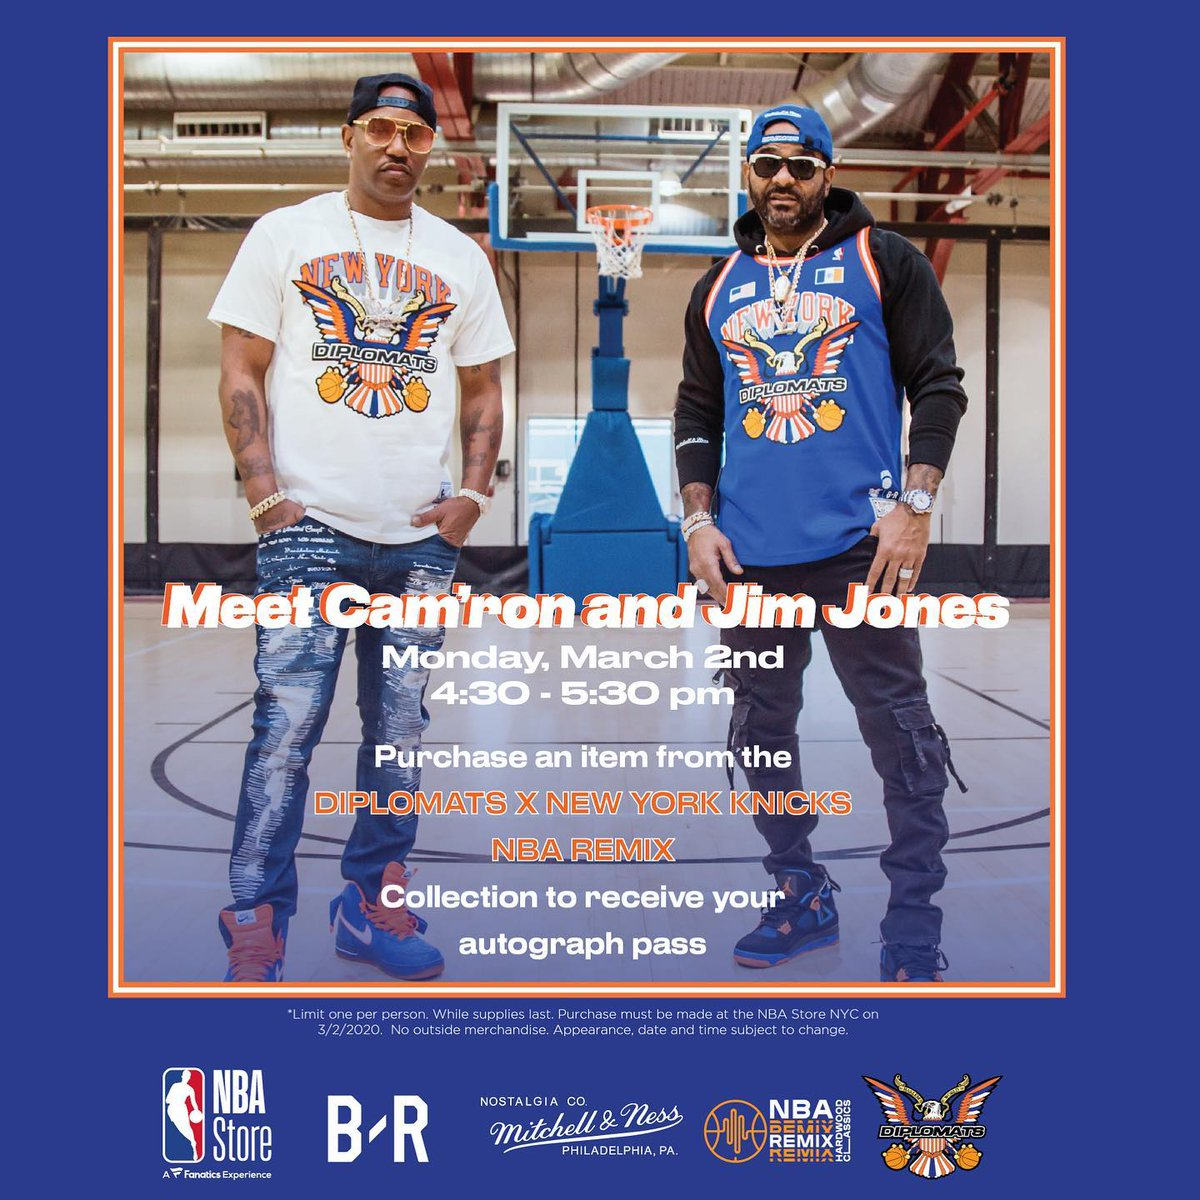 TODAY, 3/2 at the @NBASTORE!  Meet @Mr_Camron and @jimjonescapo when you purchase an item from our Diplomats @mitchell_ness x @BleacherReport #NBARemix collection.